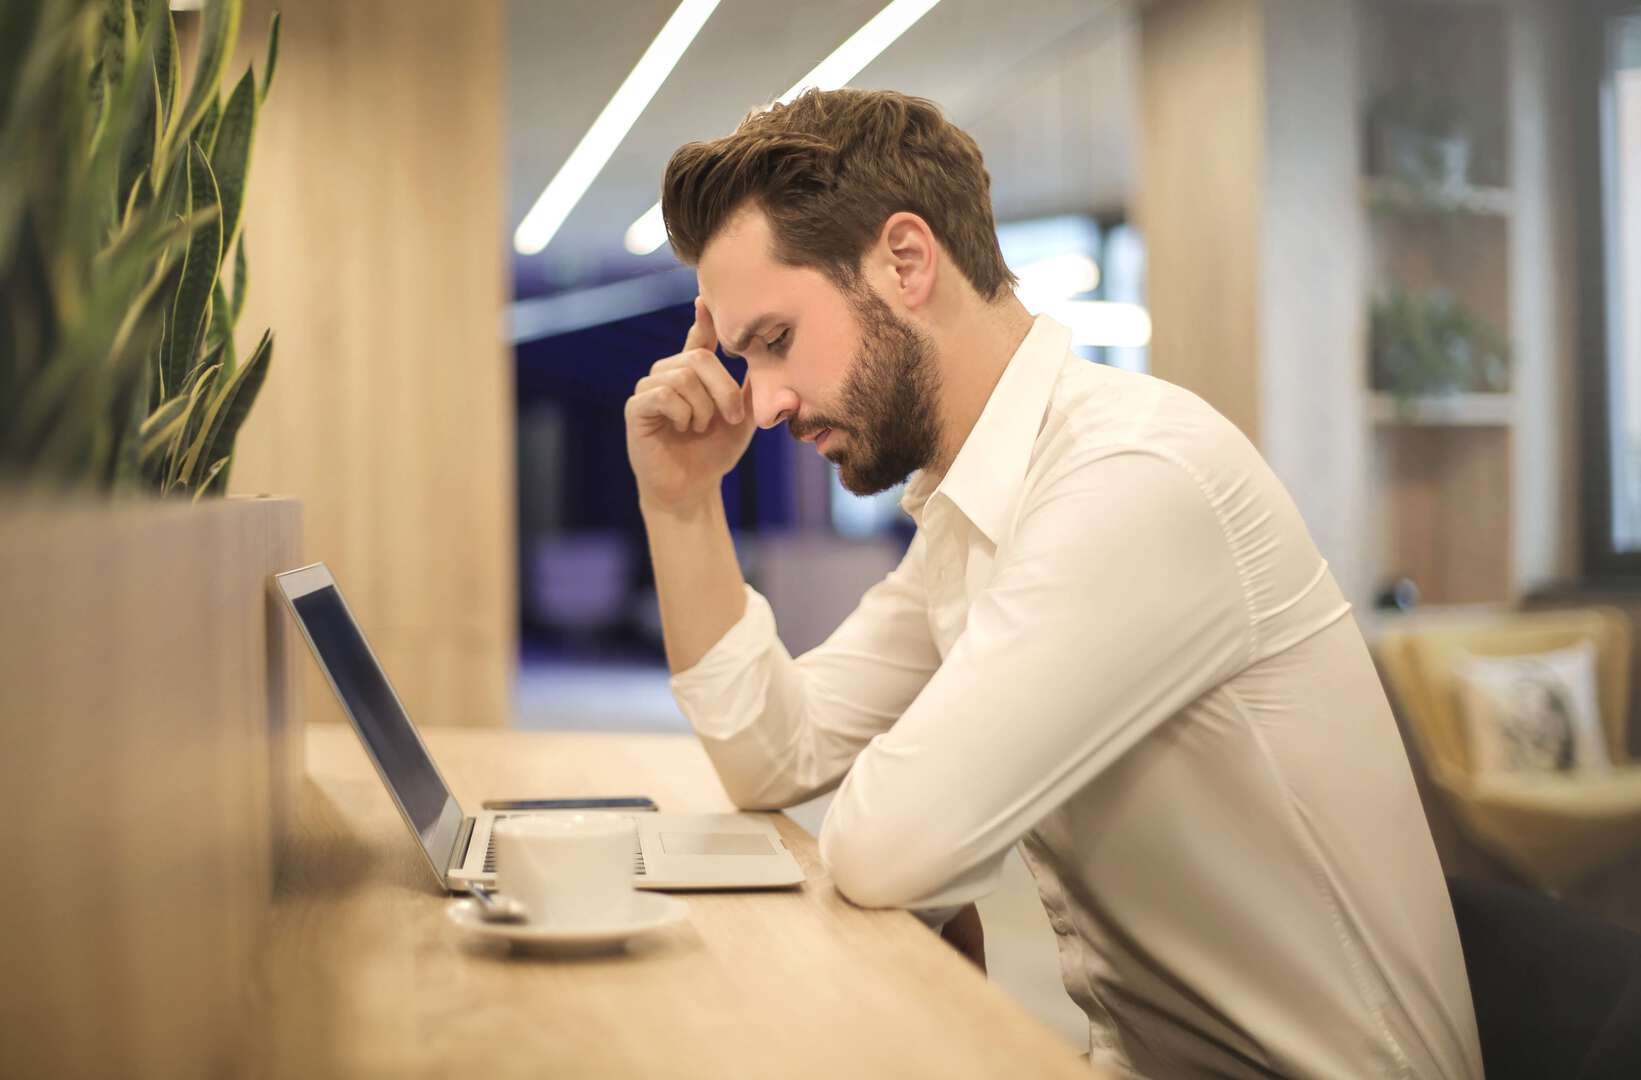 10 ways for employees to avoid headaches at work